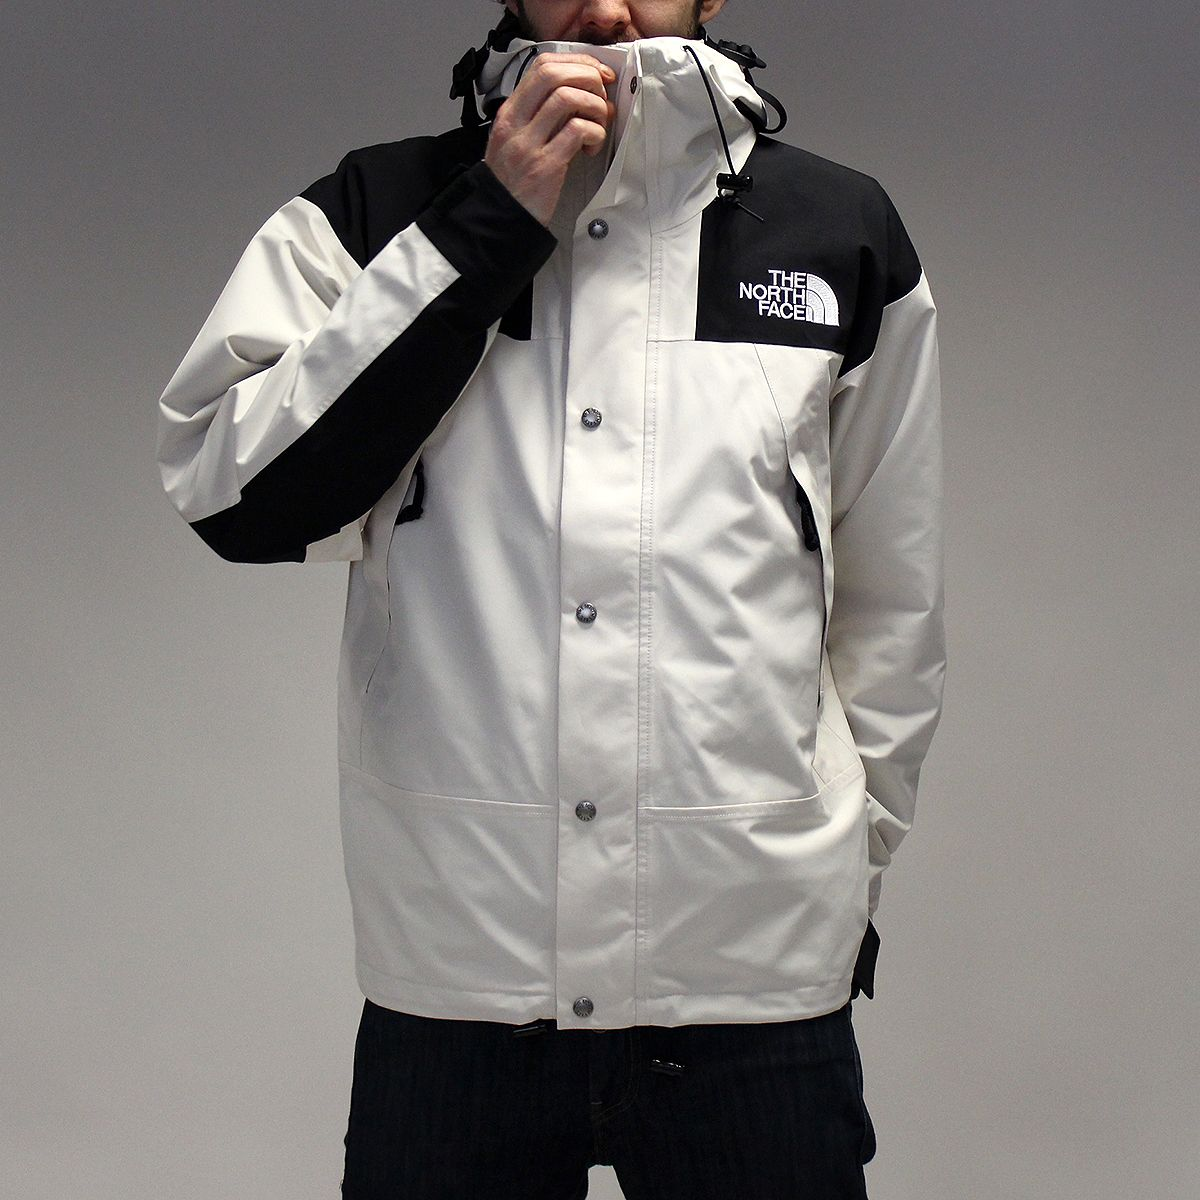 0625fbb0b6f3 THE NORTH FACE 1990 MOUNTAIN GTX JACKET – VINTAGE WHITE